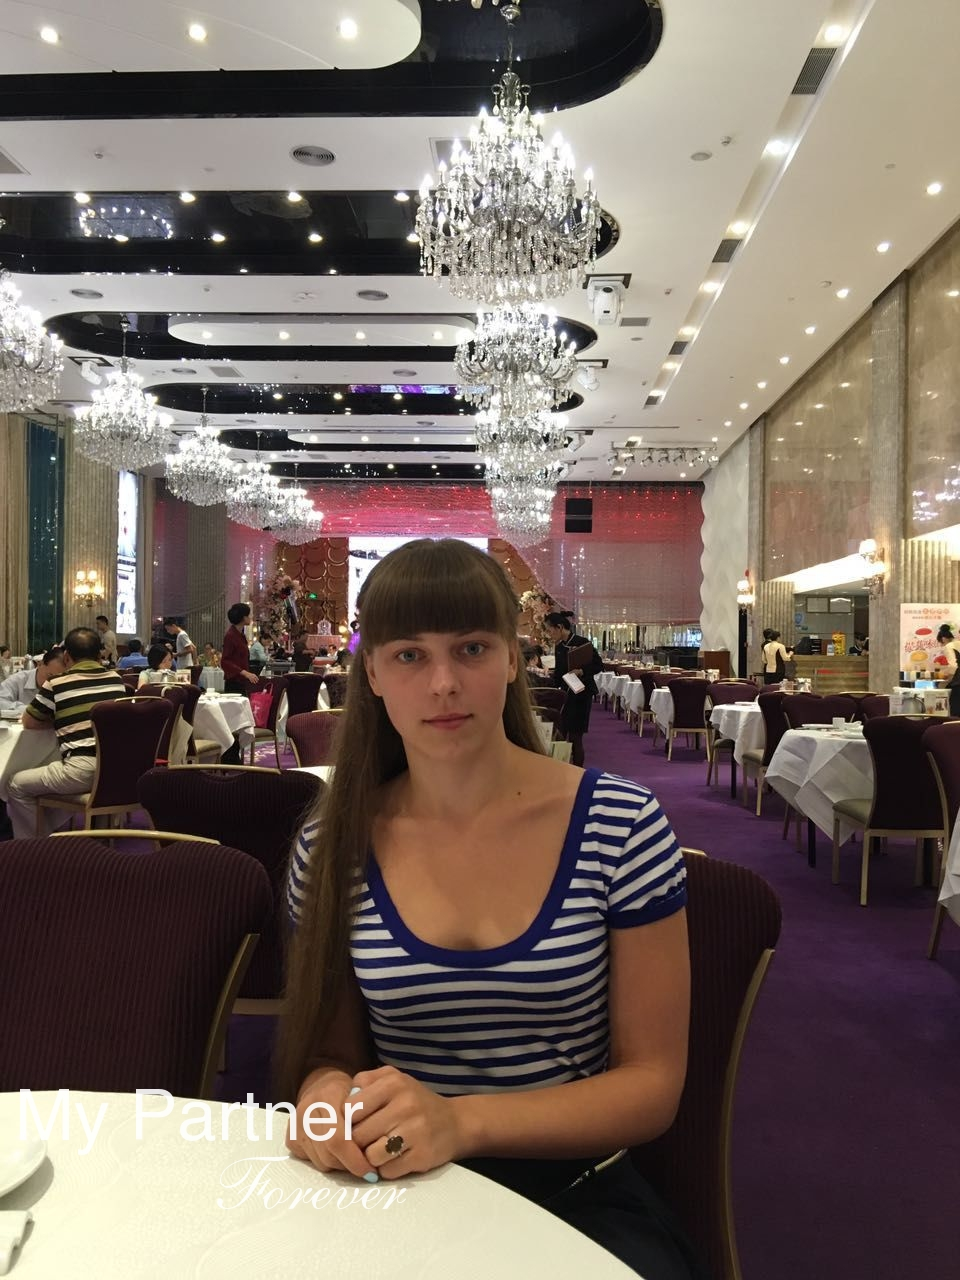 krasnoyarsk single men Online dating in krasnoyarsk, russia with over 330m users waiting to find love on blendr you are more likely to find a date than anywhere else.